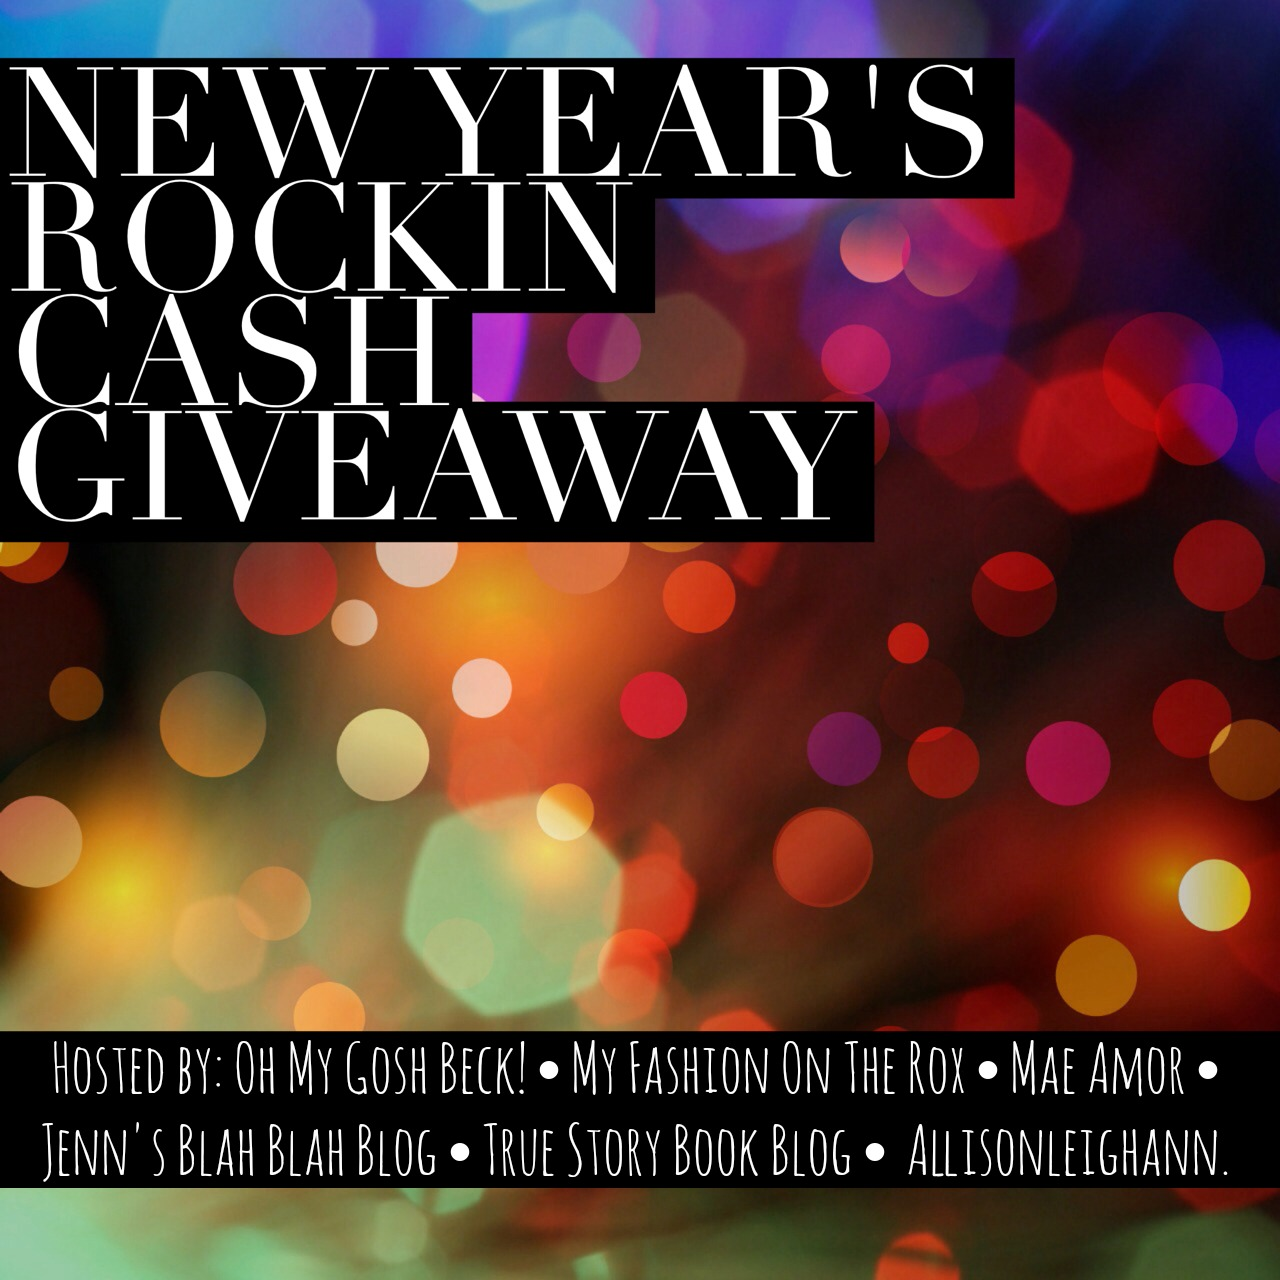 New Year's Rocking Cash Giveaway